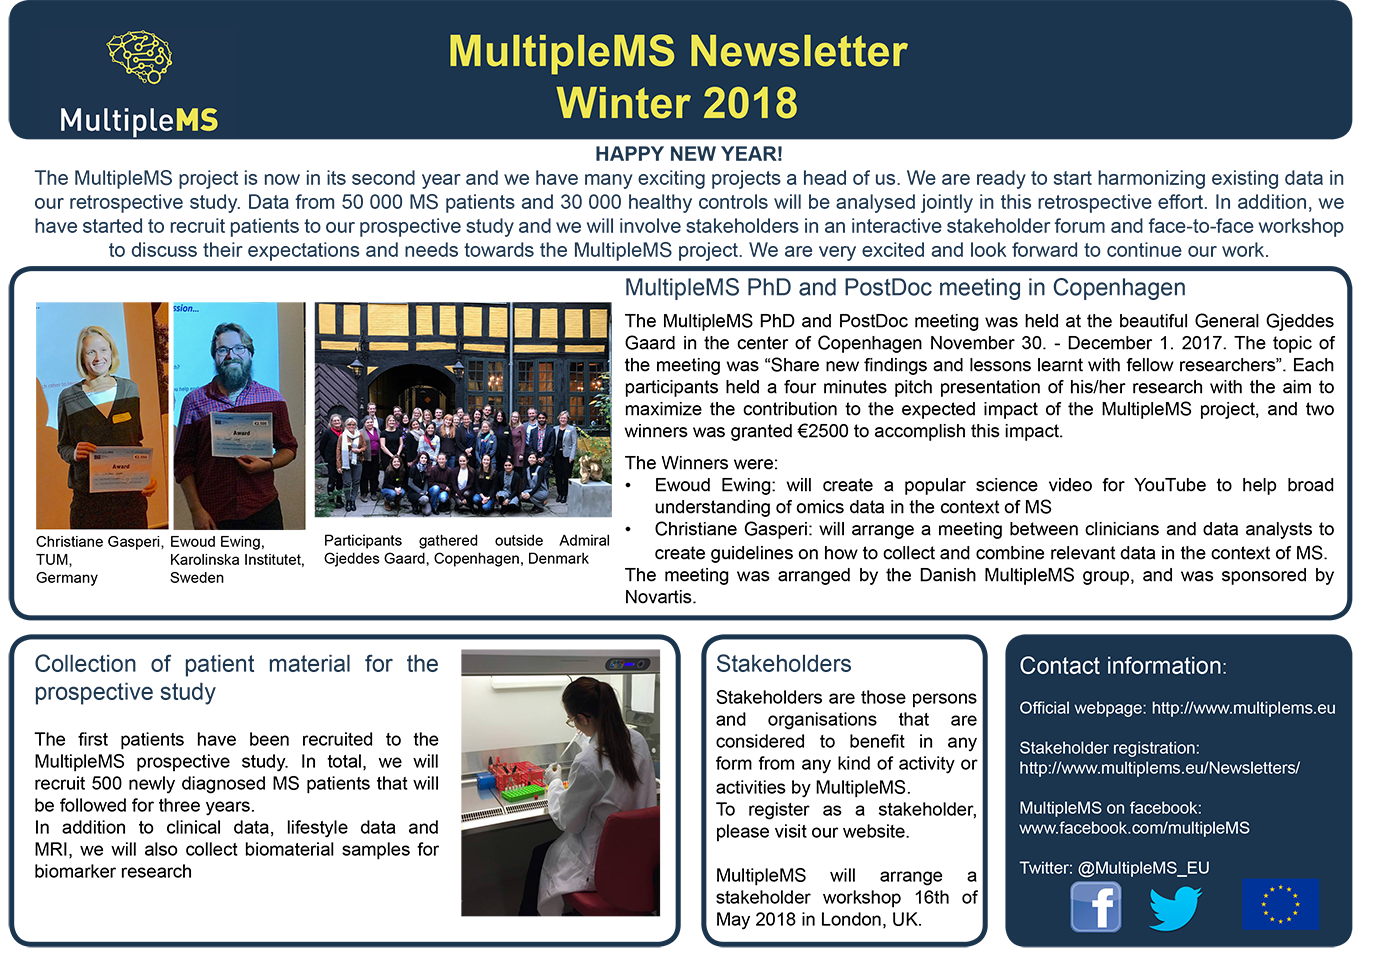 The multipleMS newsletter for winter 2018 is available as a pdf-file through the accompanying link.